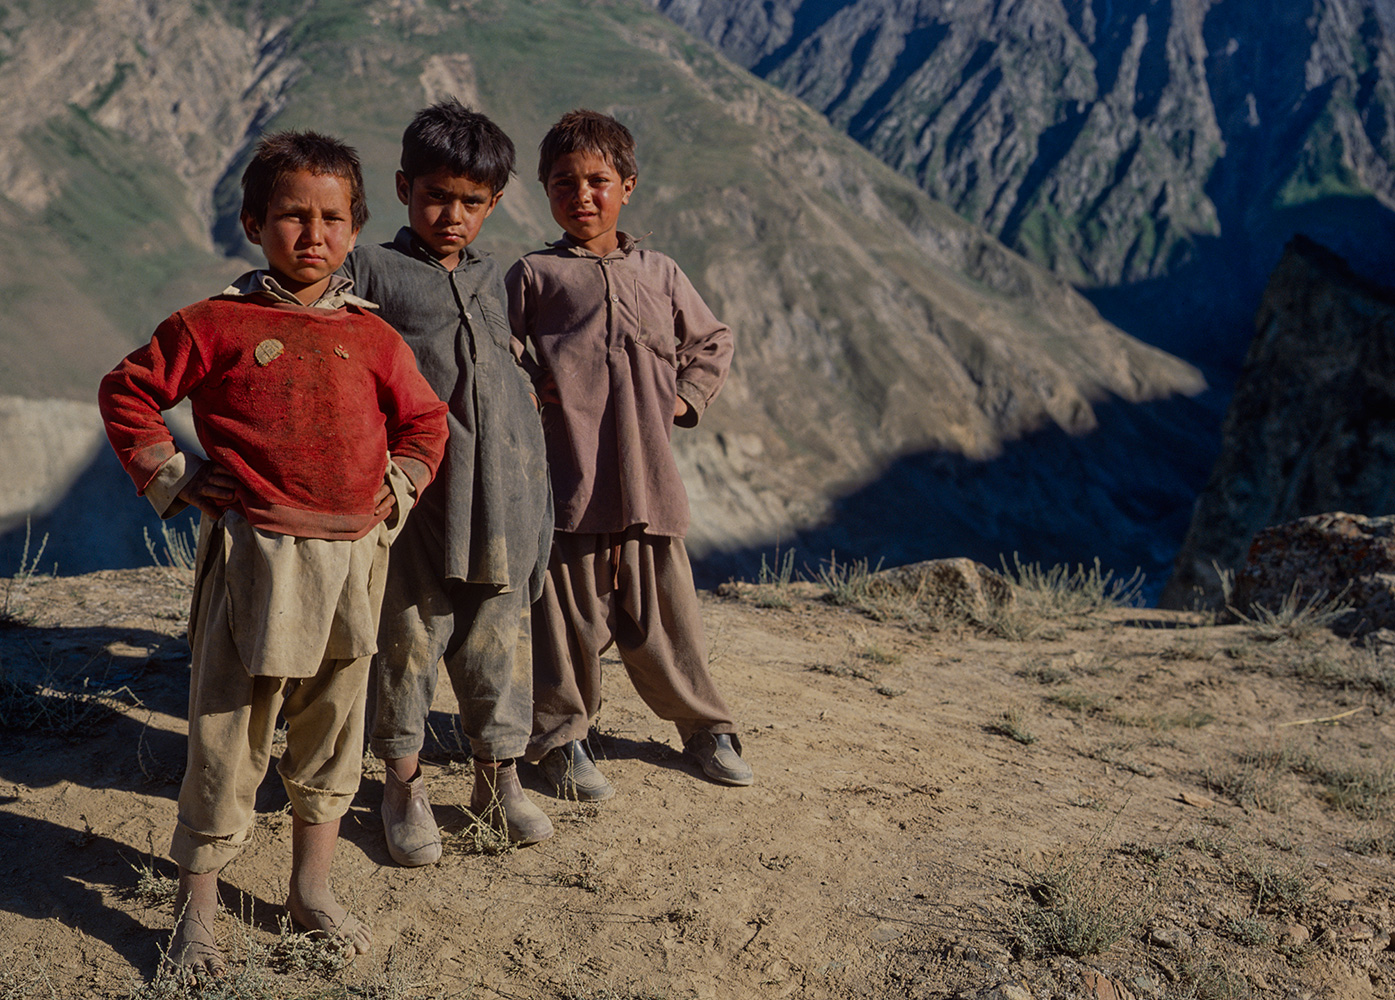 Three boys from the village who came with me on a photographic excursion one afternoon...